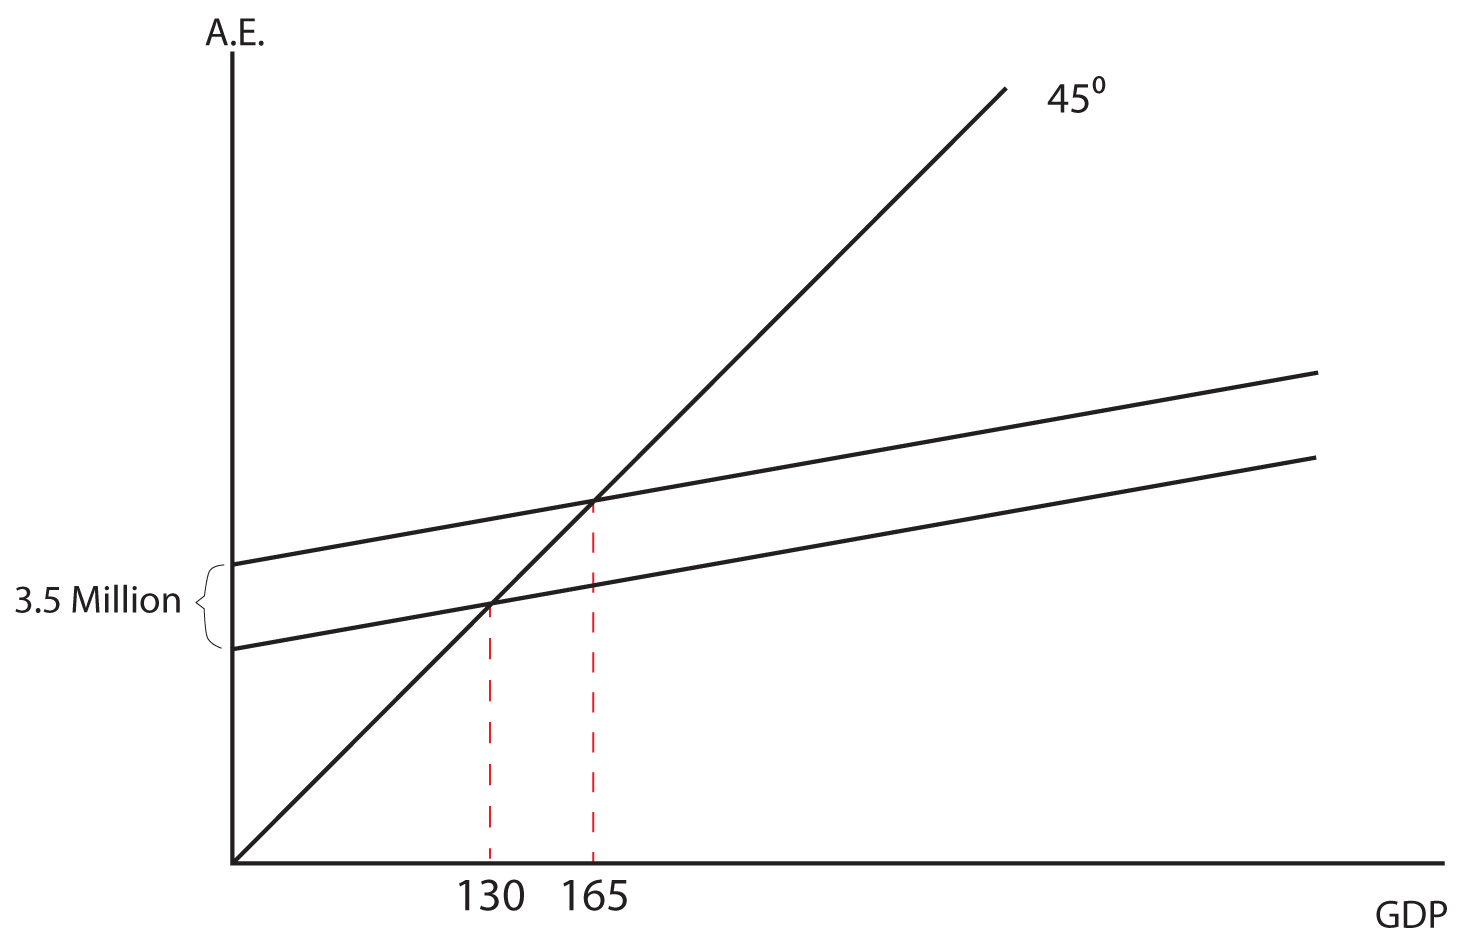 Image 706: The Image Shows A Graph The Y Axis Is Labeled Ae The